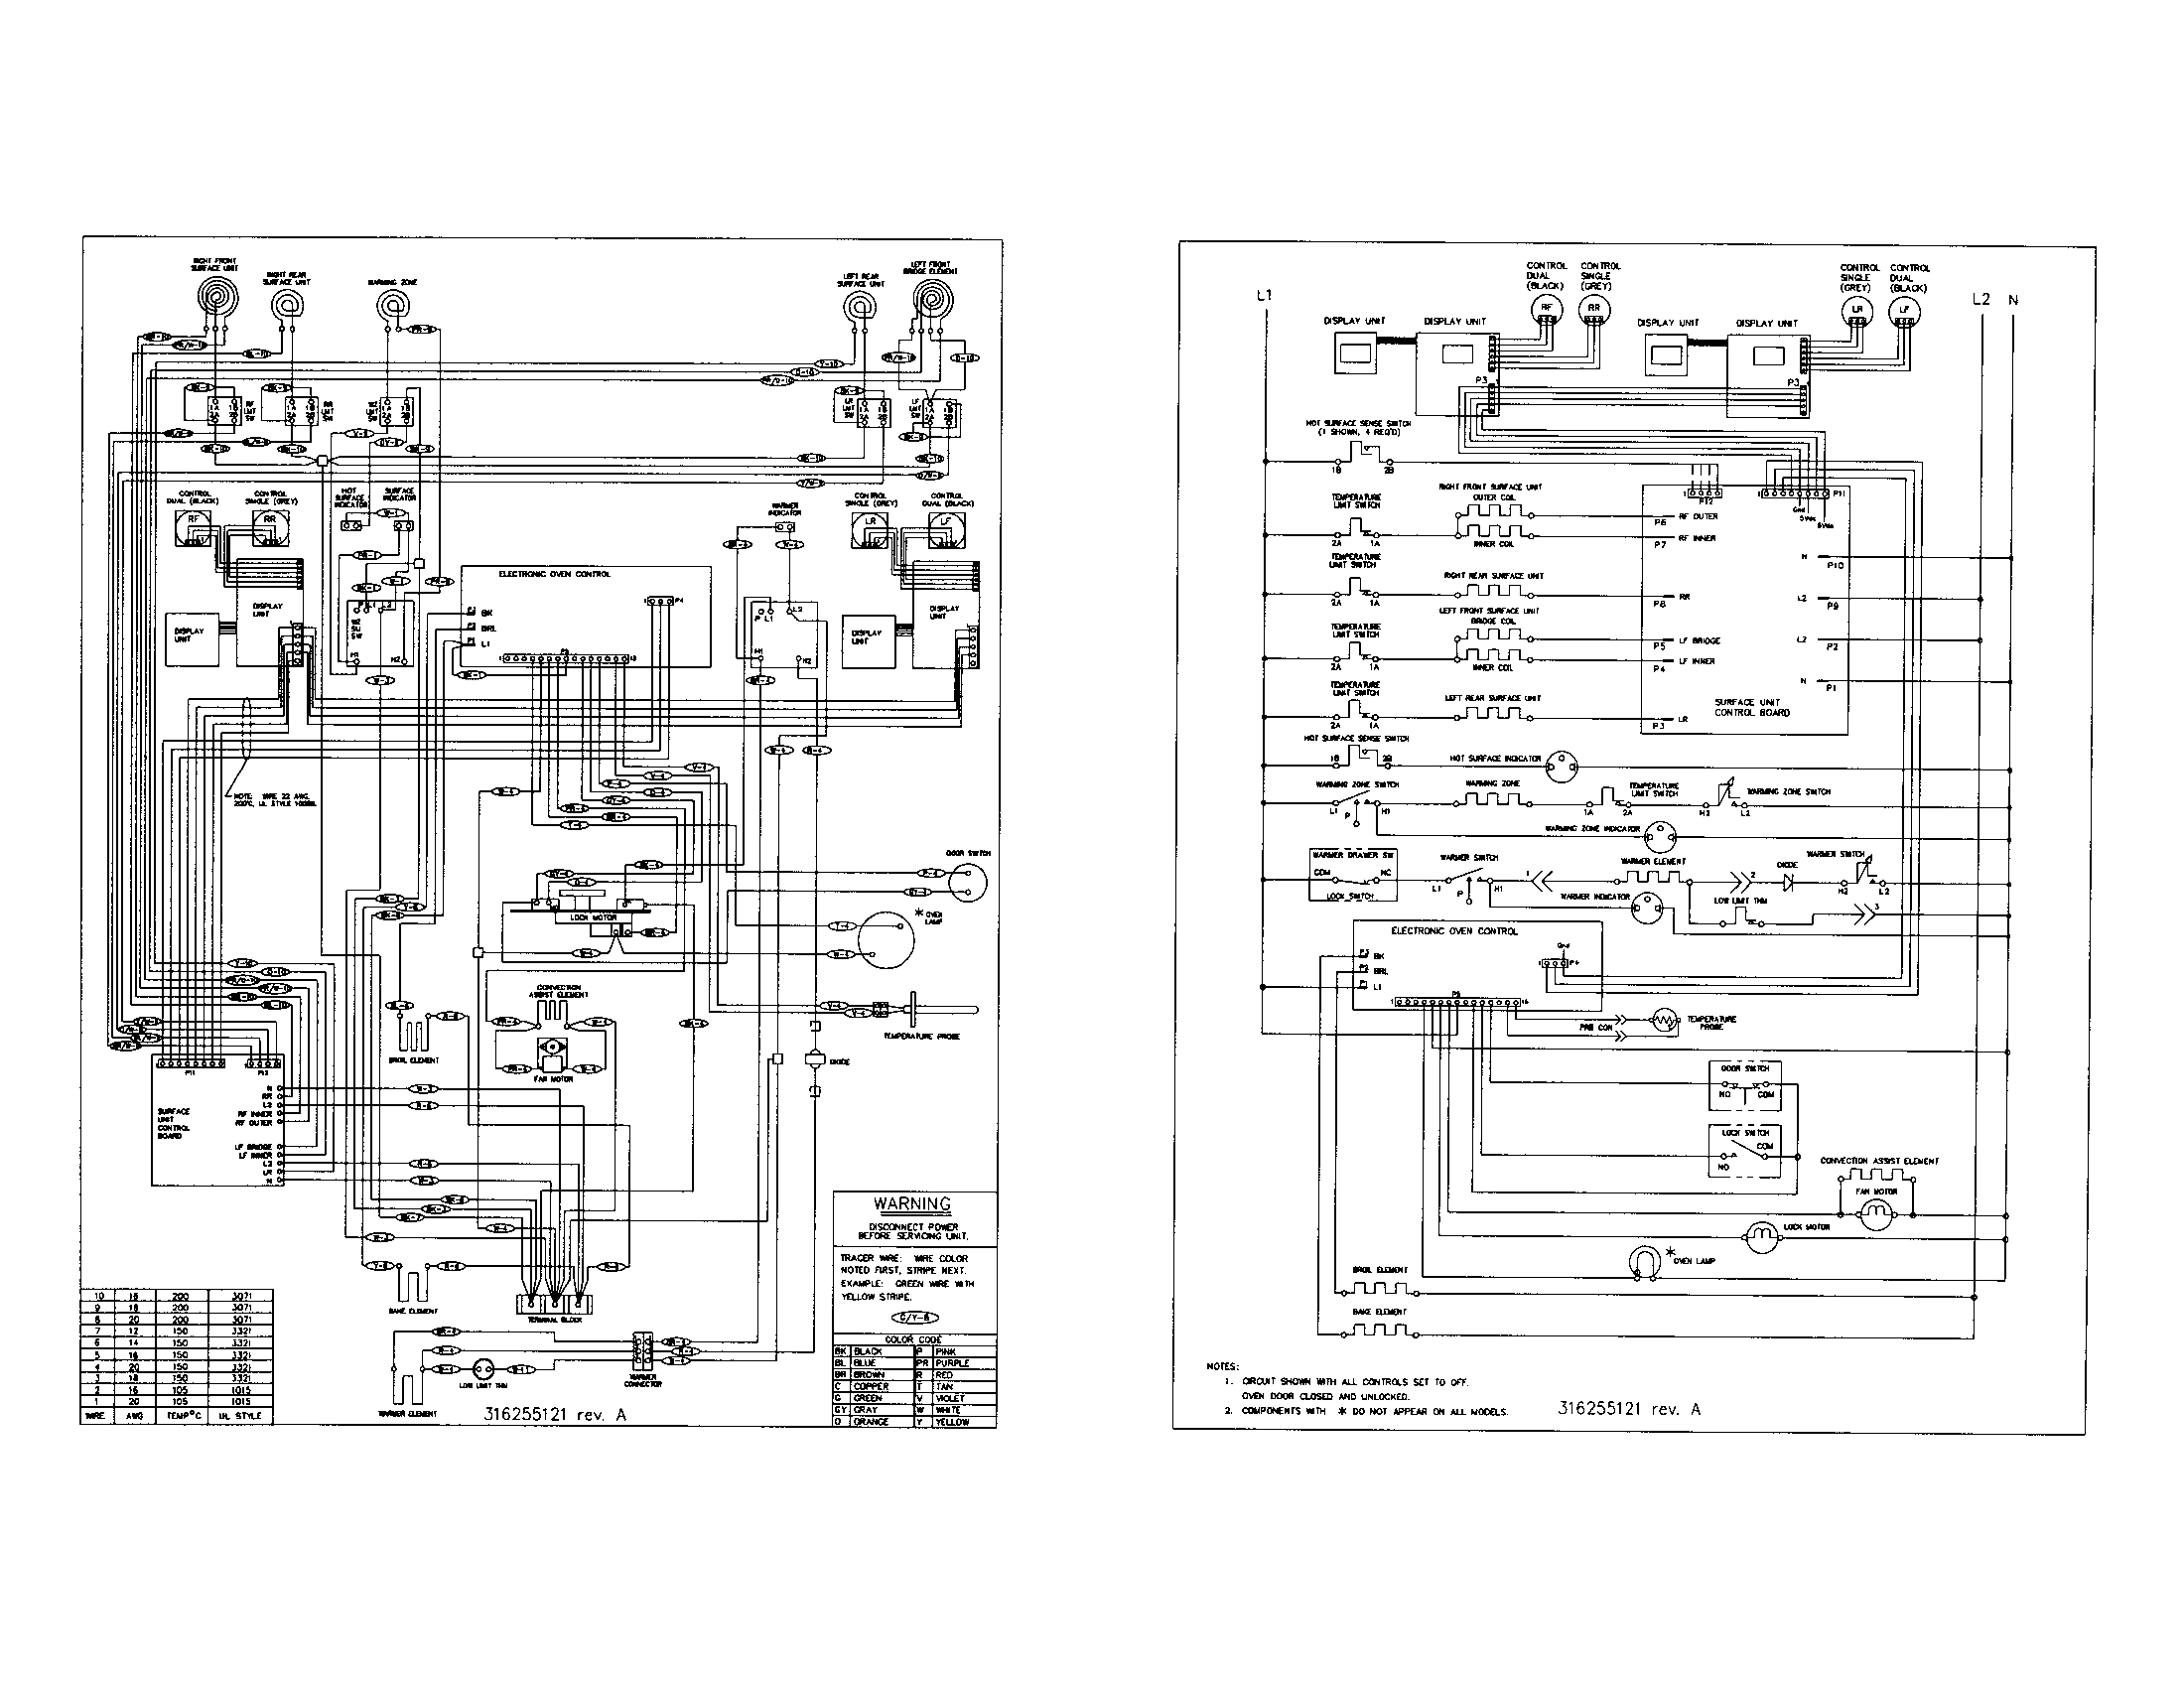 Ge Refrigerator Diagram together with Frigidaire Dishwasher Parts moreover Rheem Gas Water Heater Parts in addition Intertherm Water Heater Wiring Diagram likewise T18517872 Capacitor wiring. on frigidaire heat pump wiring diagram